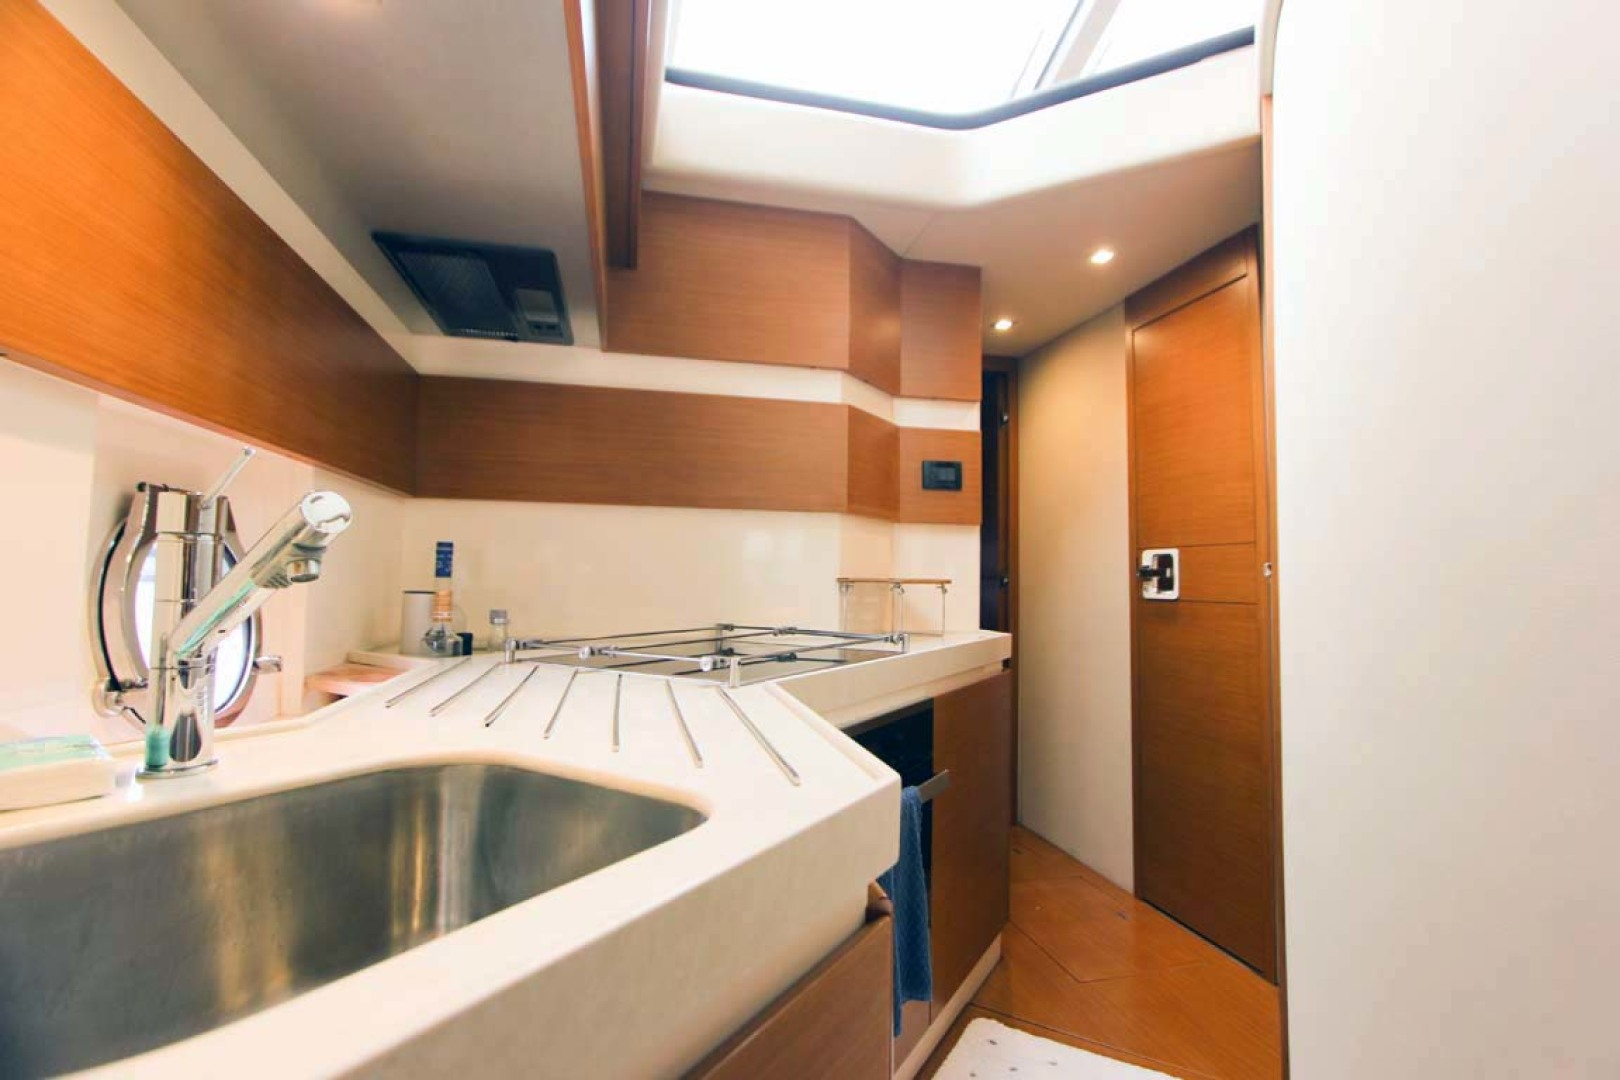 Azimut-45 Flybridge 2016 -Coral Gables-Florida-United States-Solid Surface Countertop-1269393 | Thumbnail